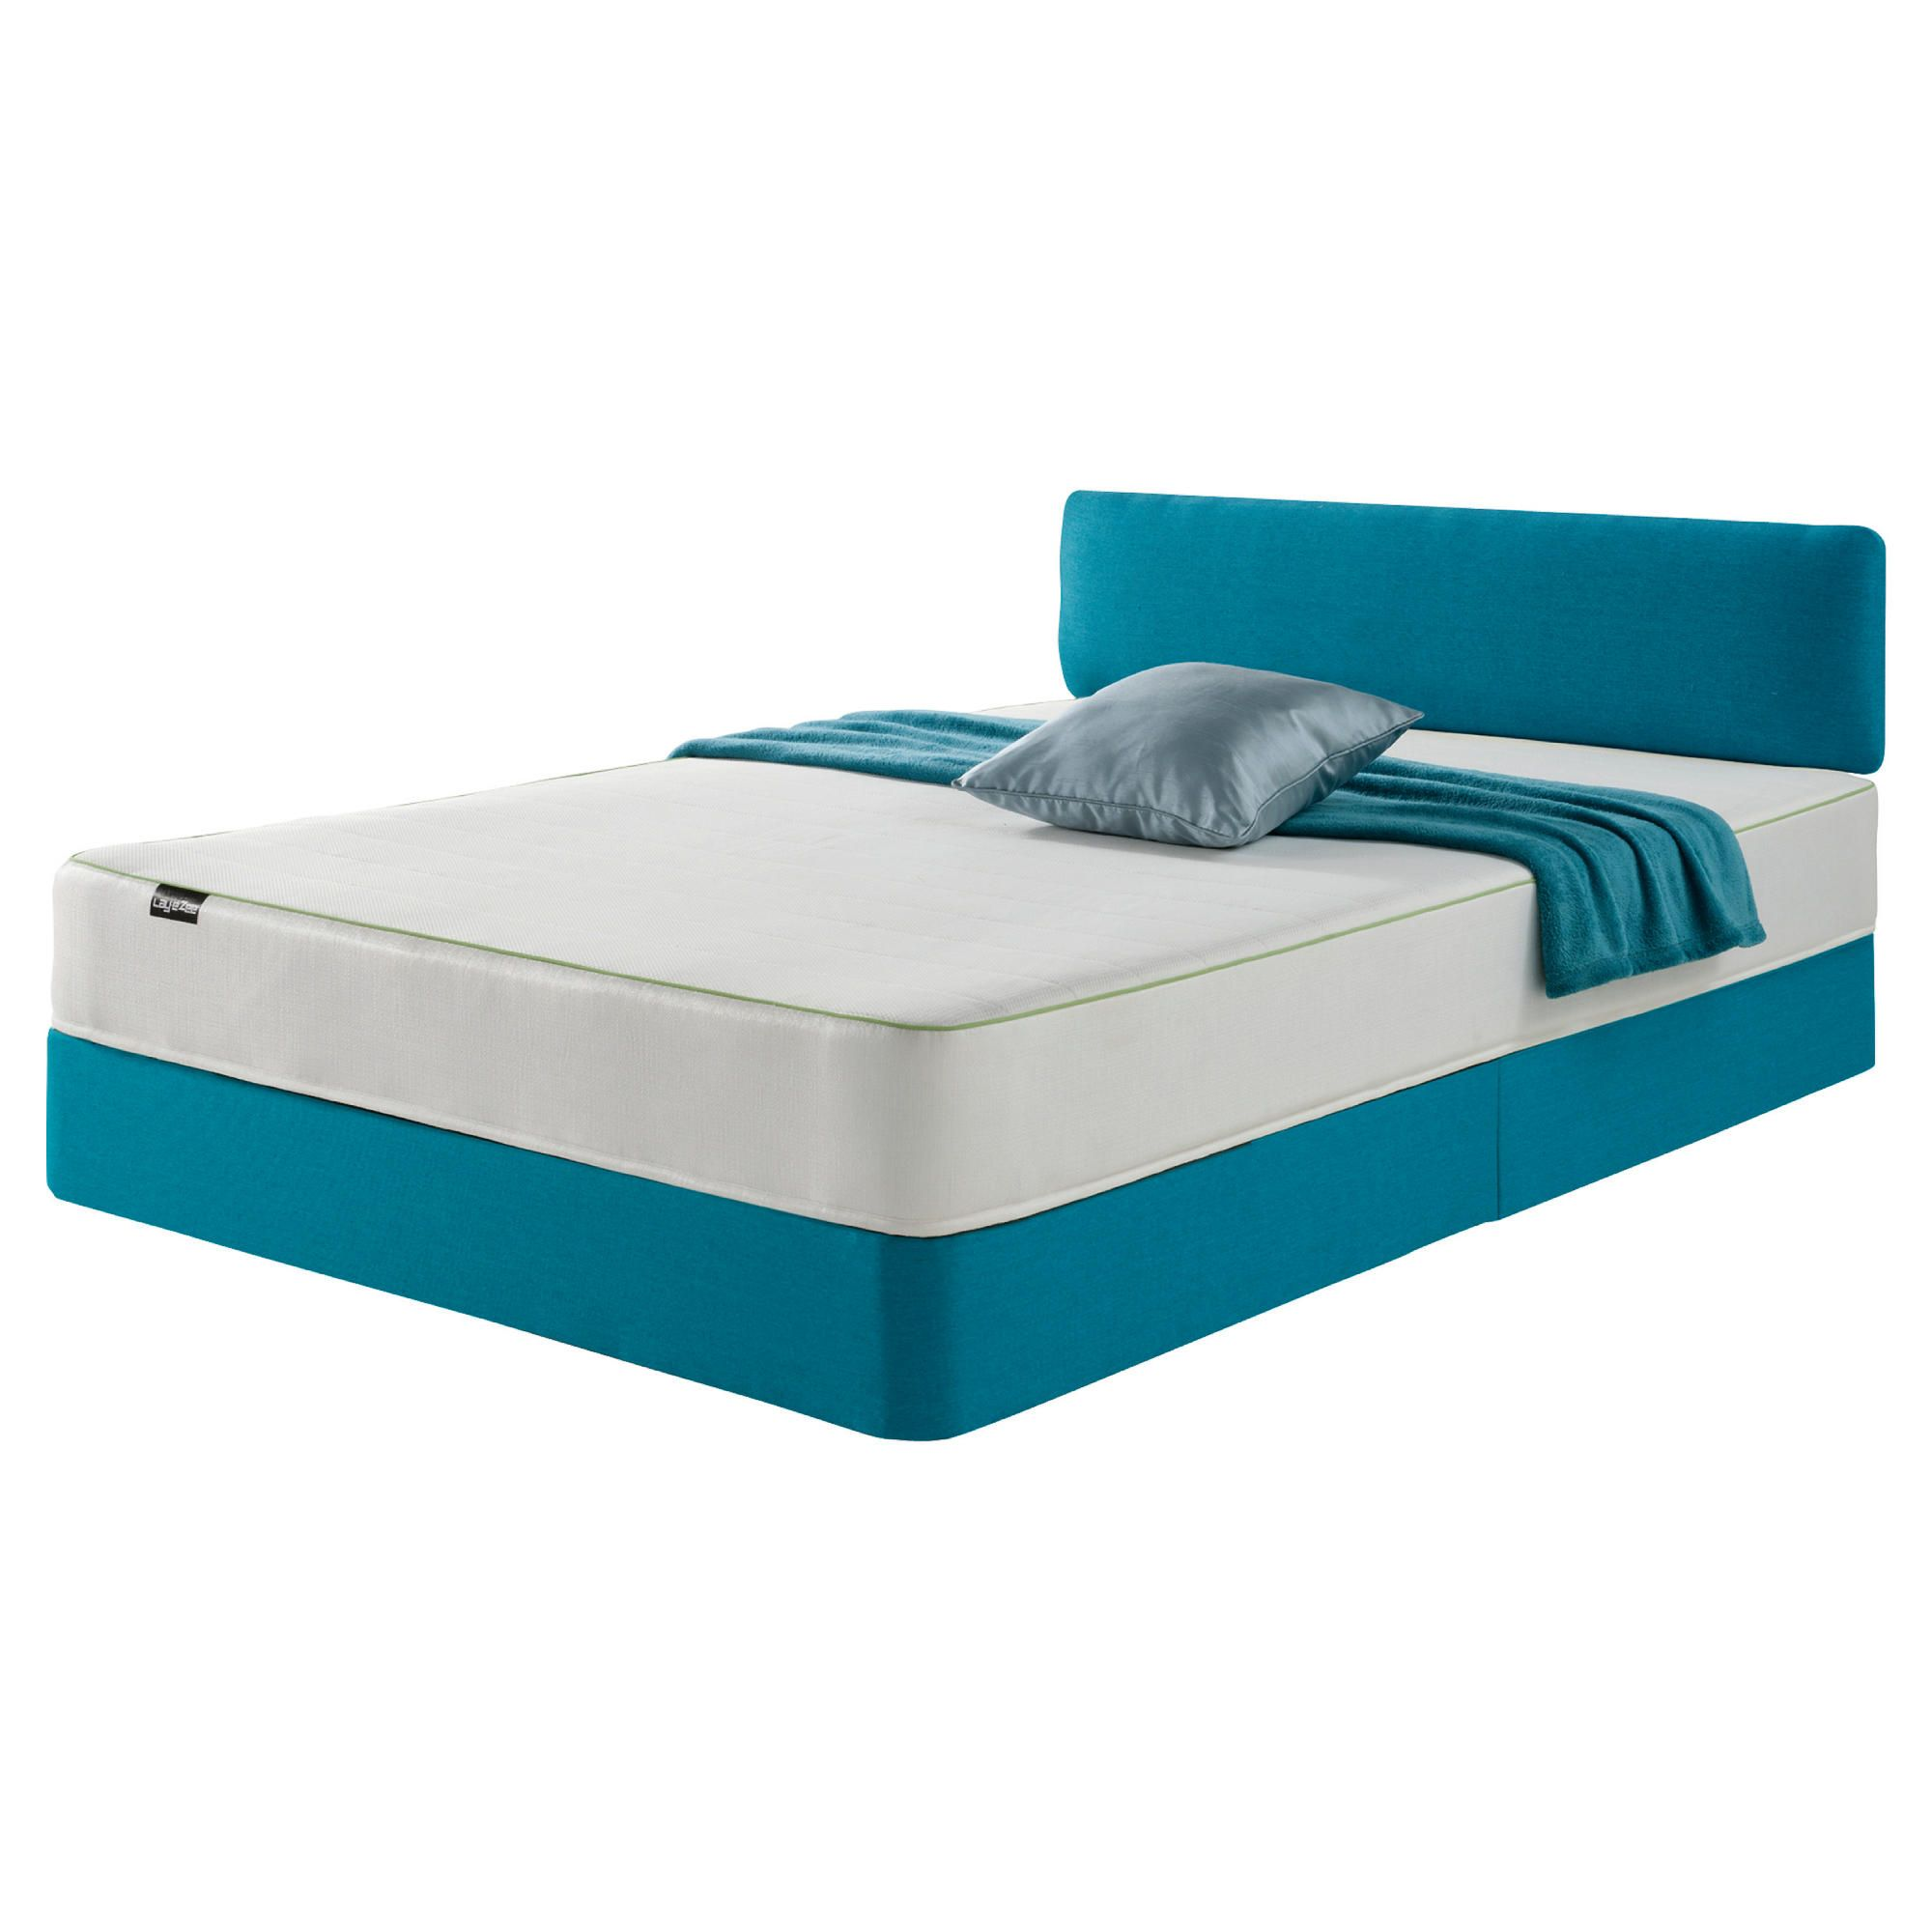 Layezee Teal Bed and Headboard Standard Mattress Double at Tescos Direct